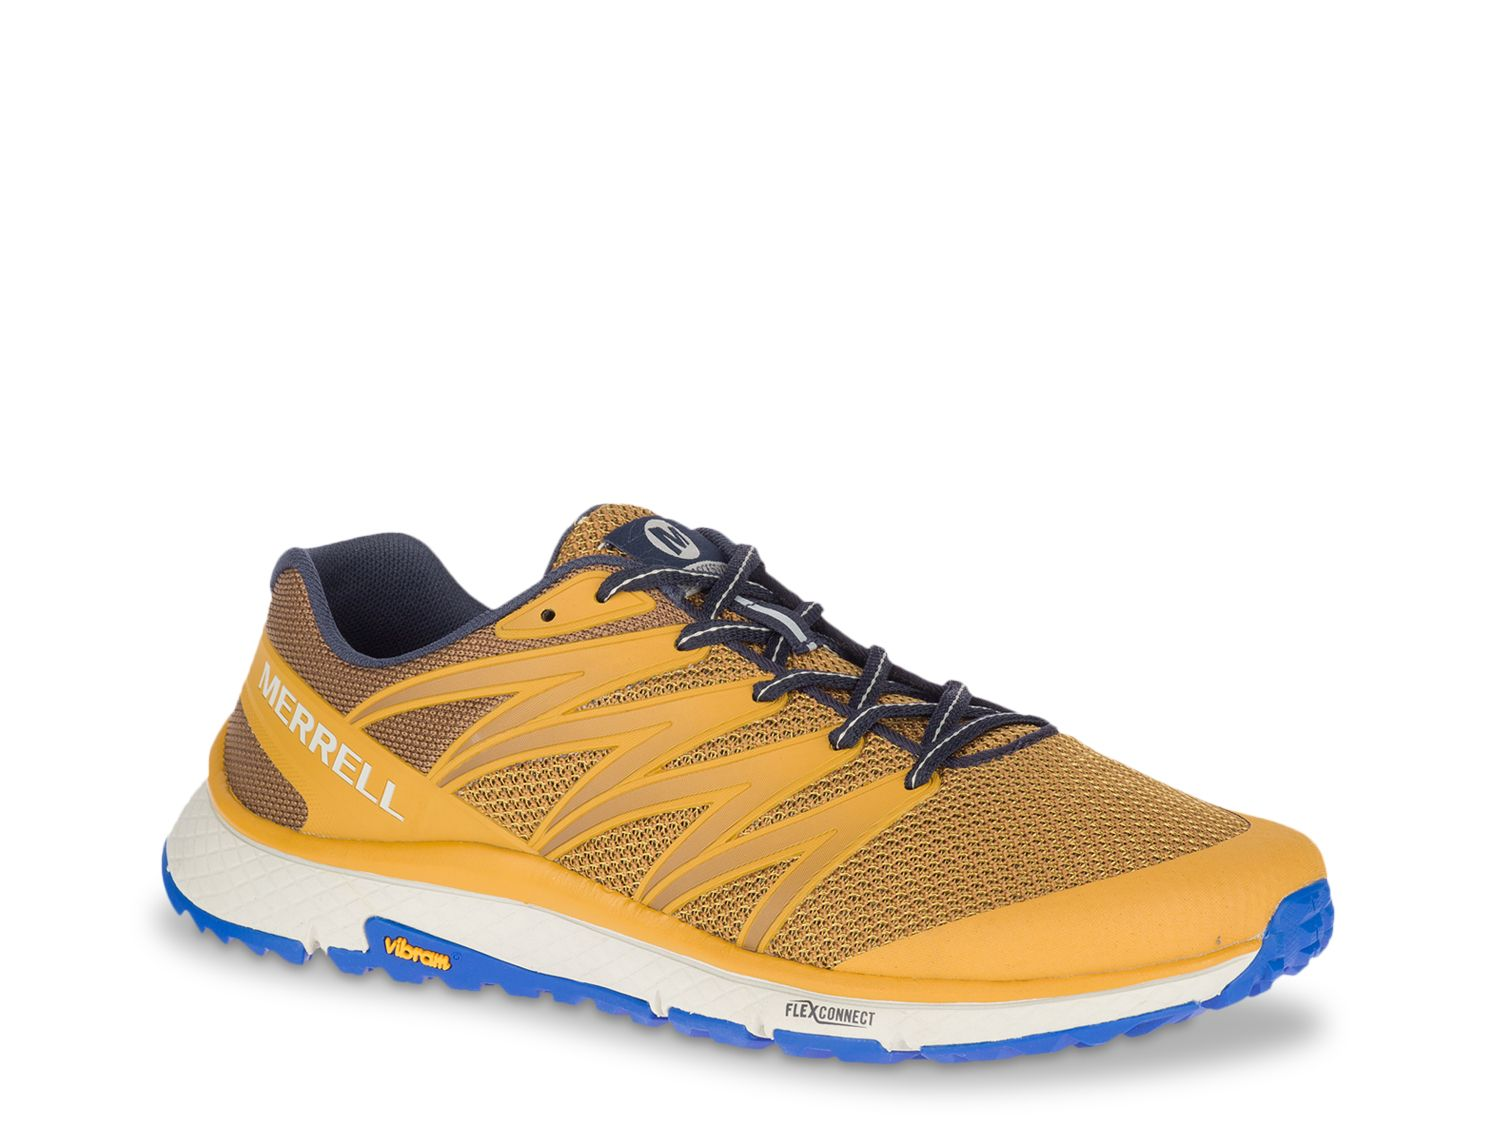 Merrell-Bare Access XTR Trail Shoe - Men's Make every run memorable with the Bare Access XTR trail running shoe from Merrell. Featuring Barefoot 2 construction with TPU film heel counter, this sneaker has FLEXconnect® dual-directional flex-grooves and Vibram® Tc5+ grippy lug sole.